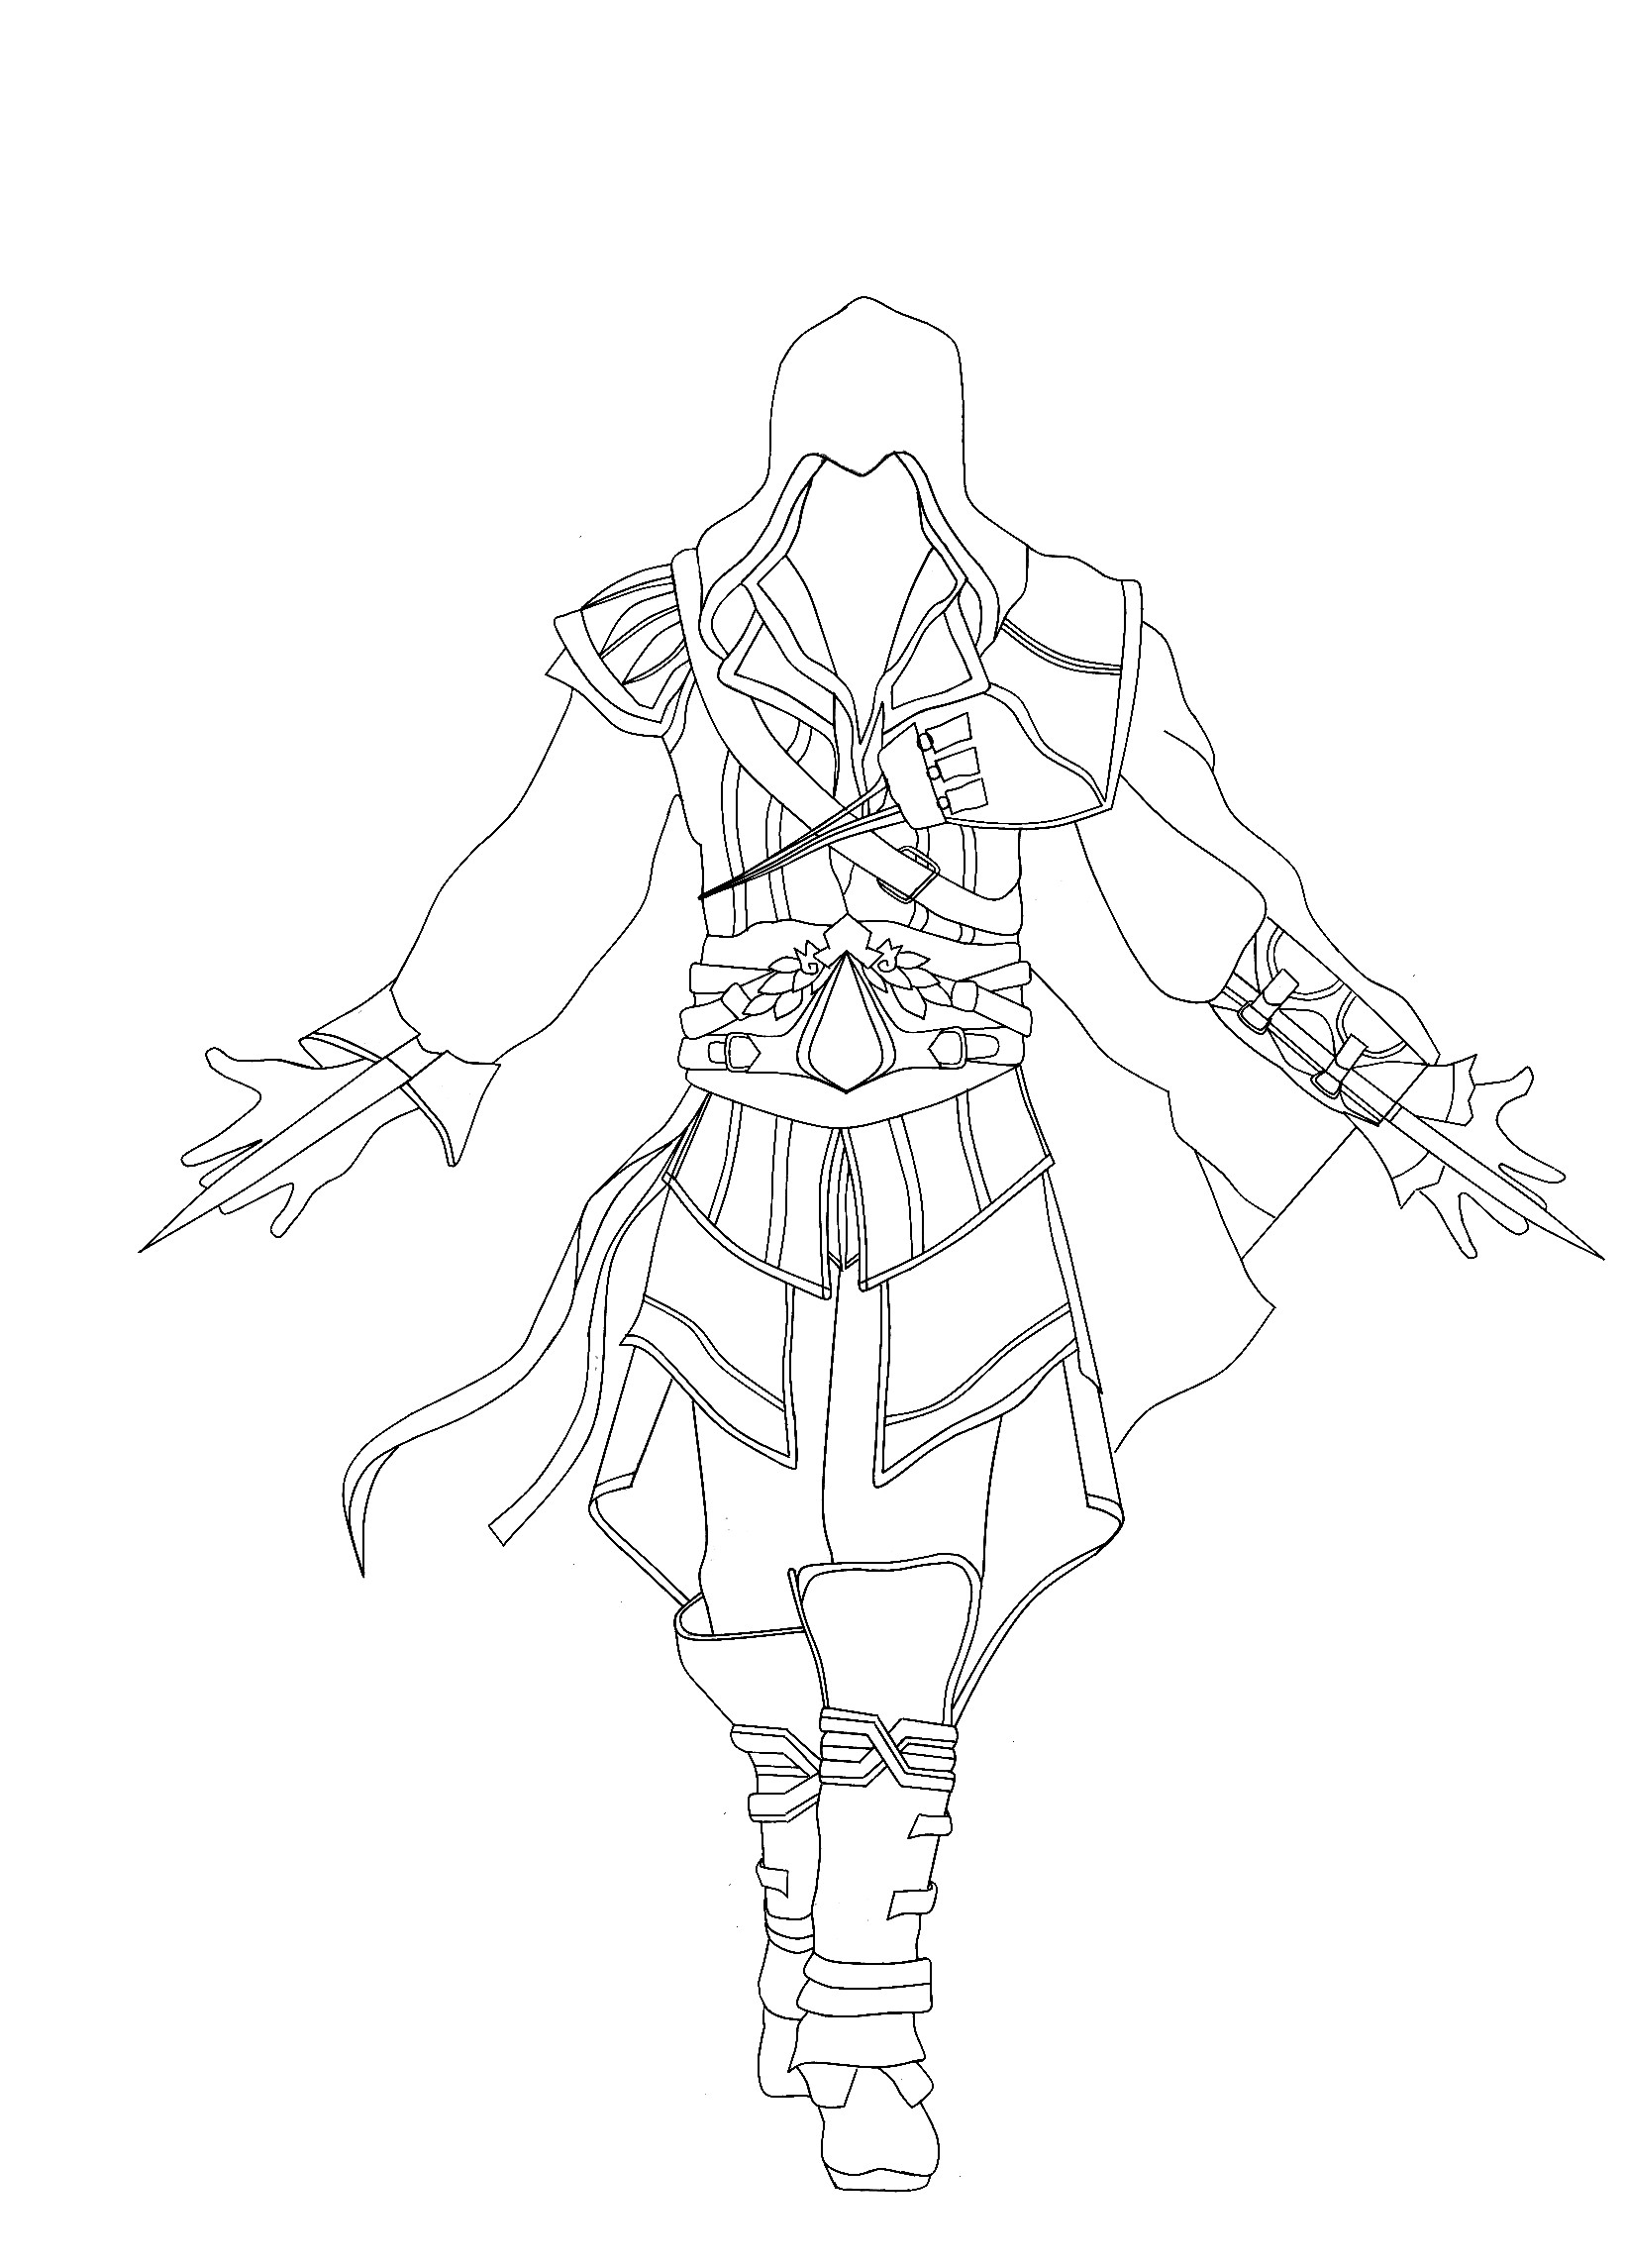 Assassins Creed Ausmalbilder  free Assassin Creed coloring pages